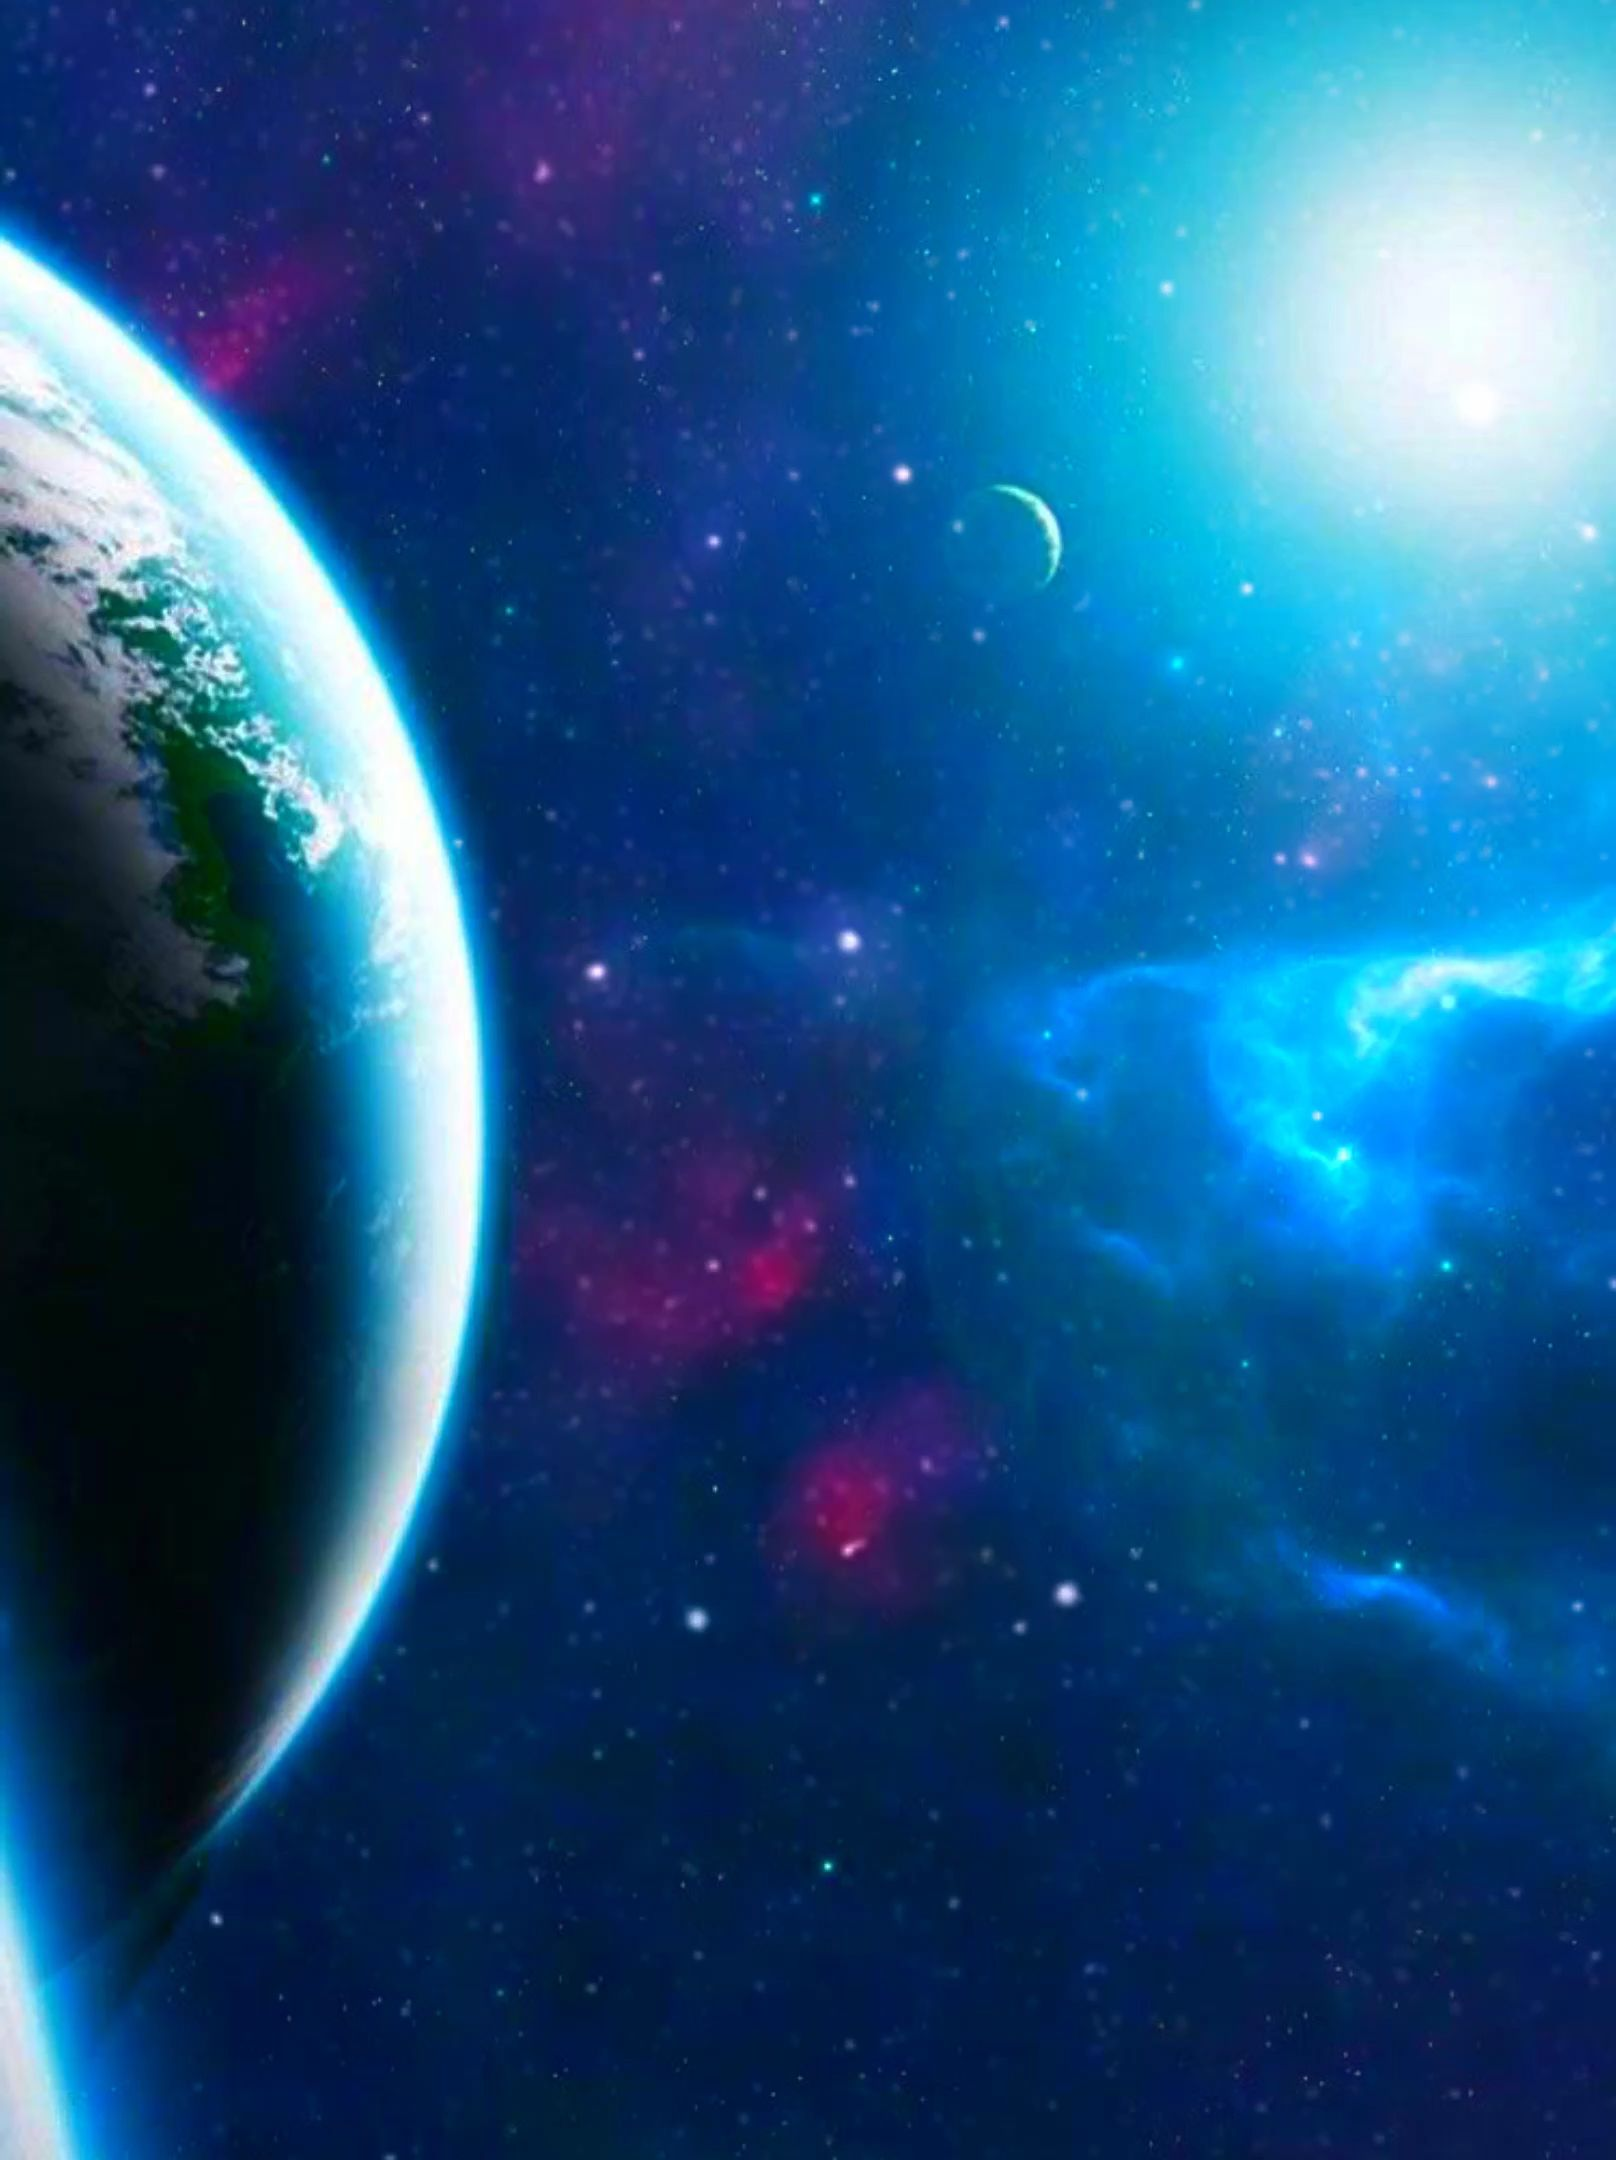 Live wallpaper planet galaxy